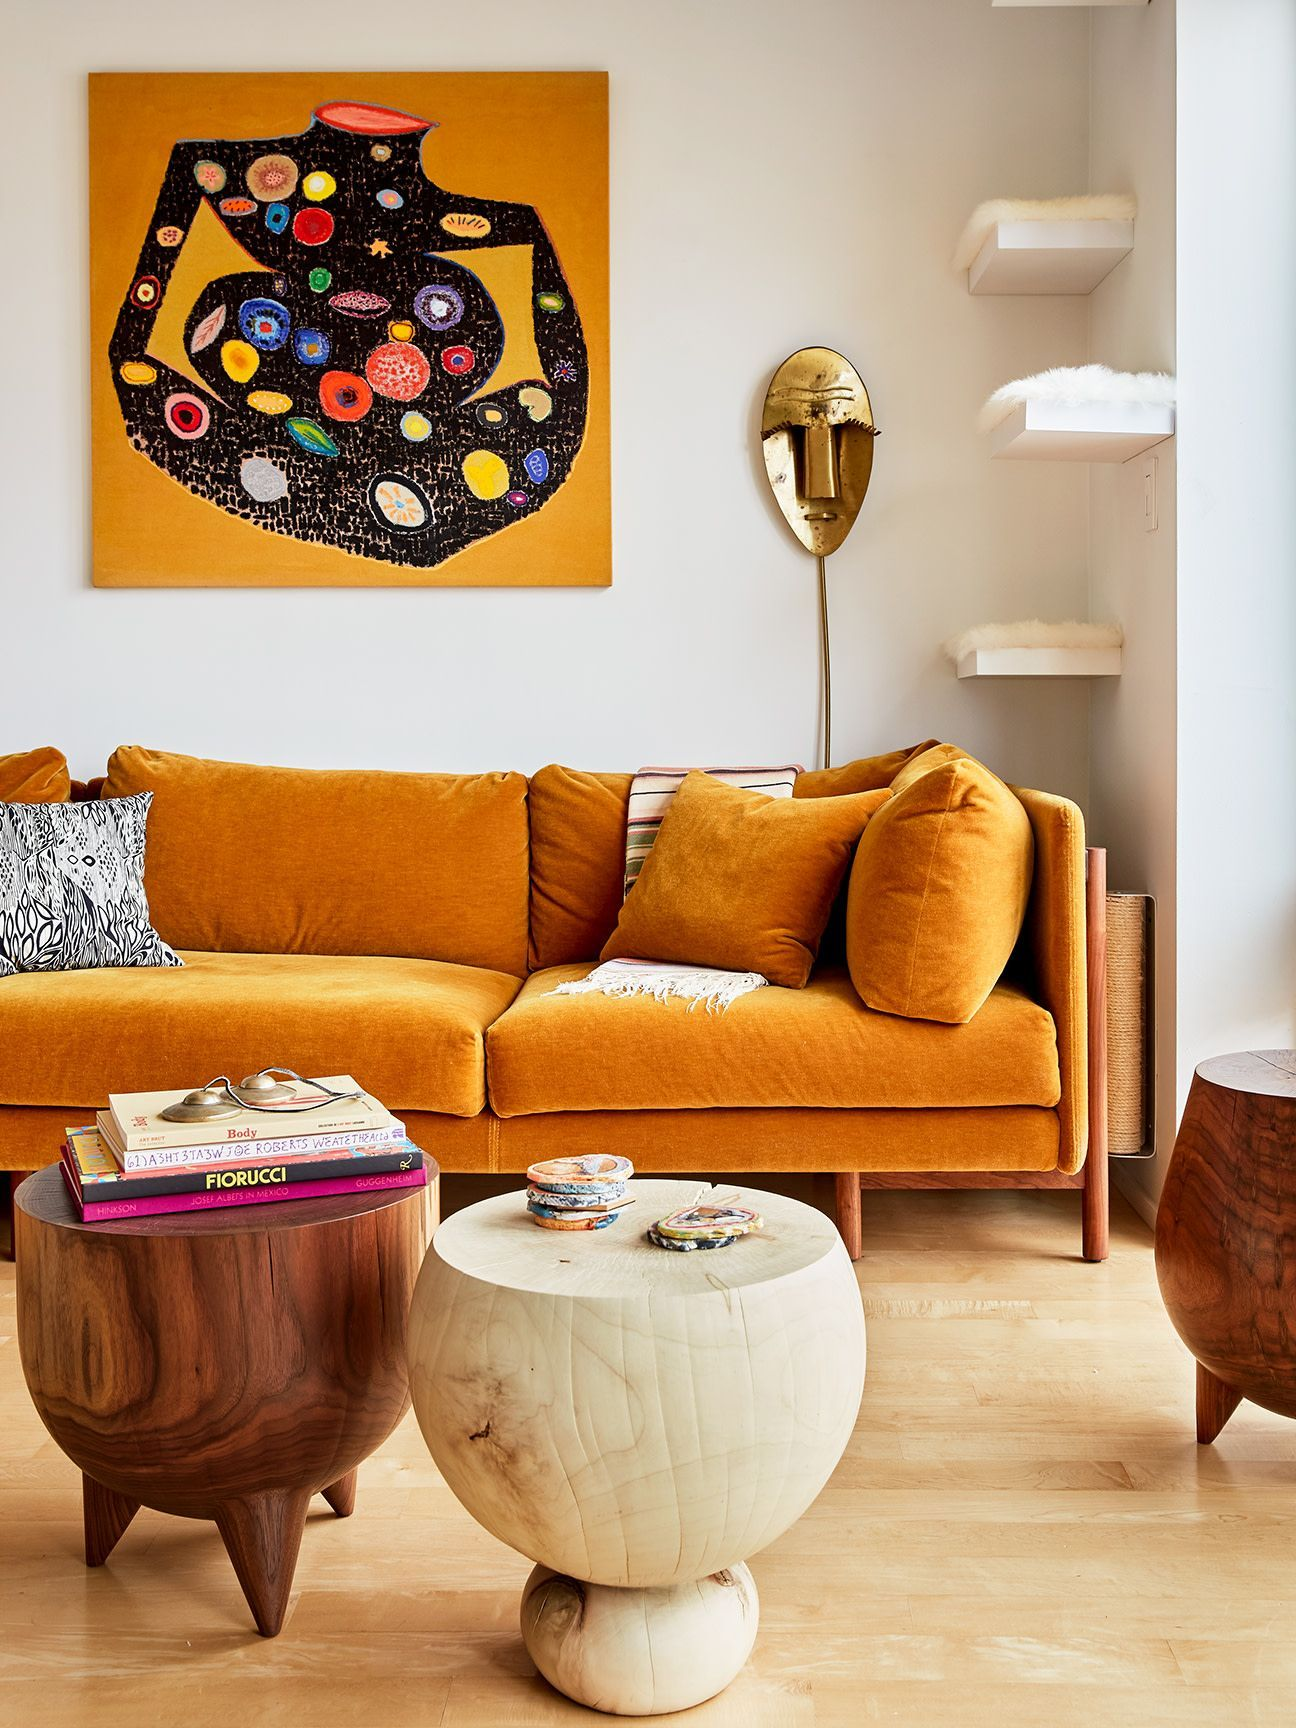 Buying #Editor #Sofa I Spent 15 Months Searching for the Perfect